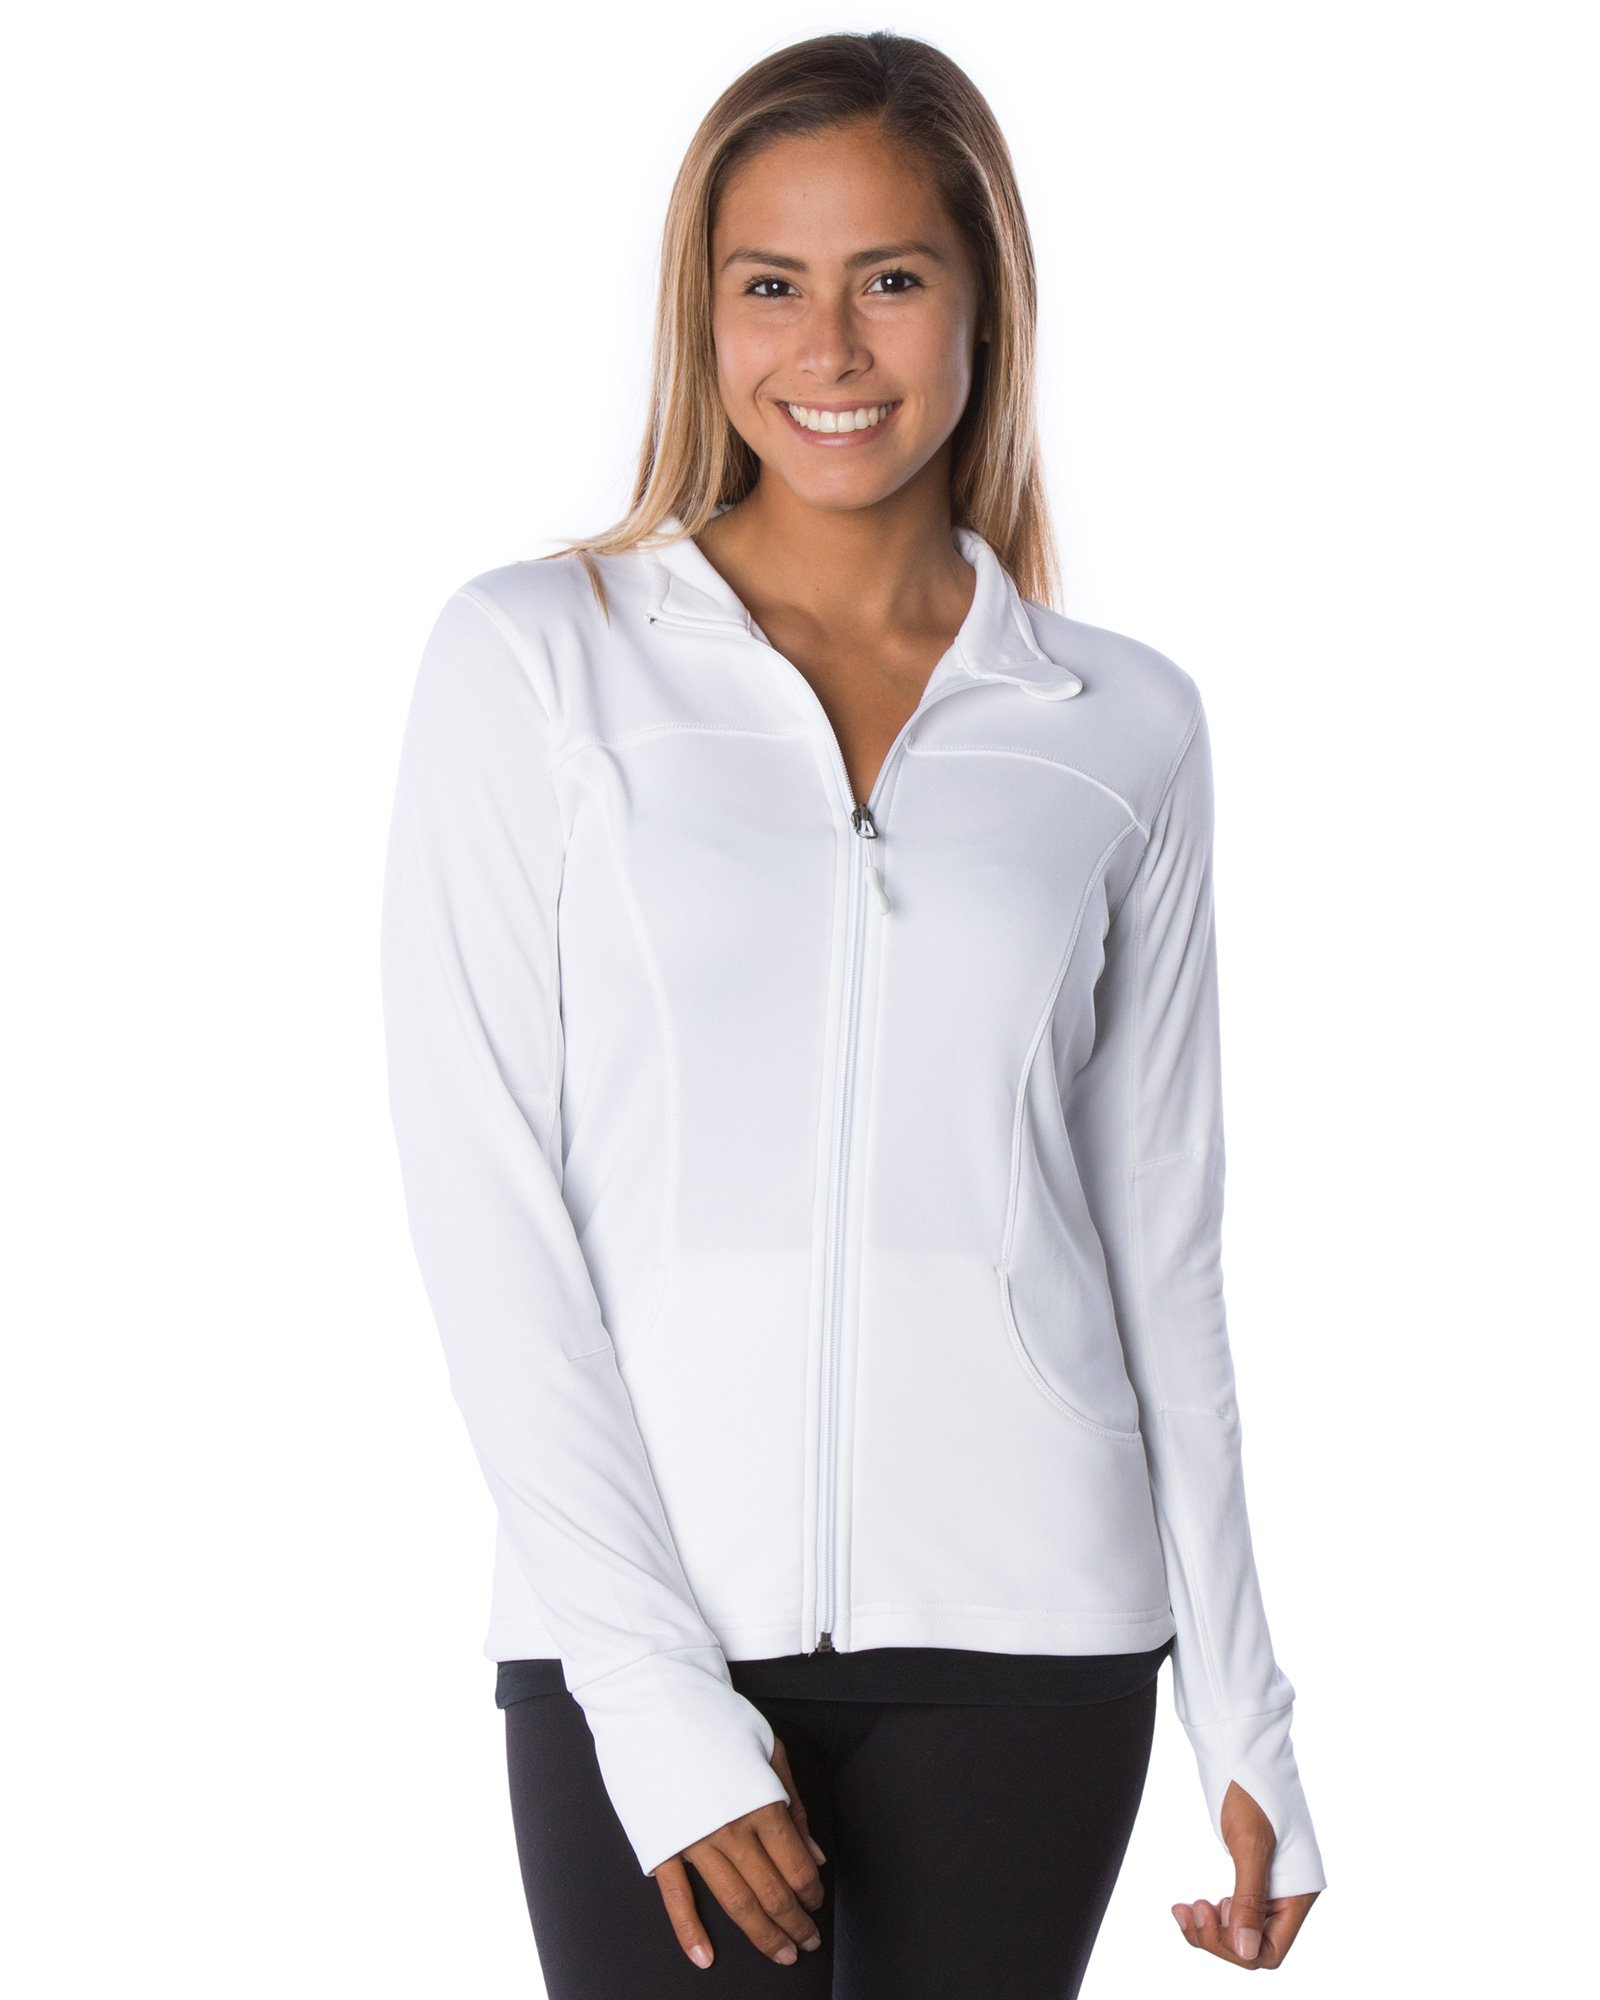 Global Women's Slim Fit Lightweight Full Zip Yoga Workout Jacket XS White